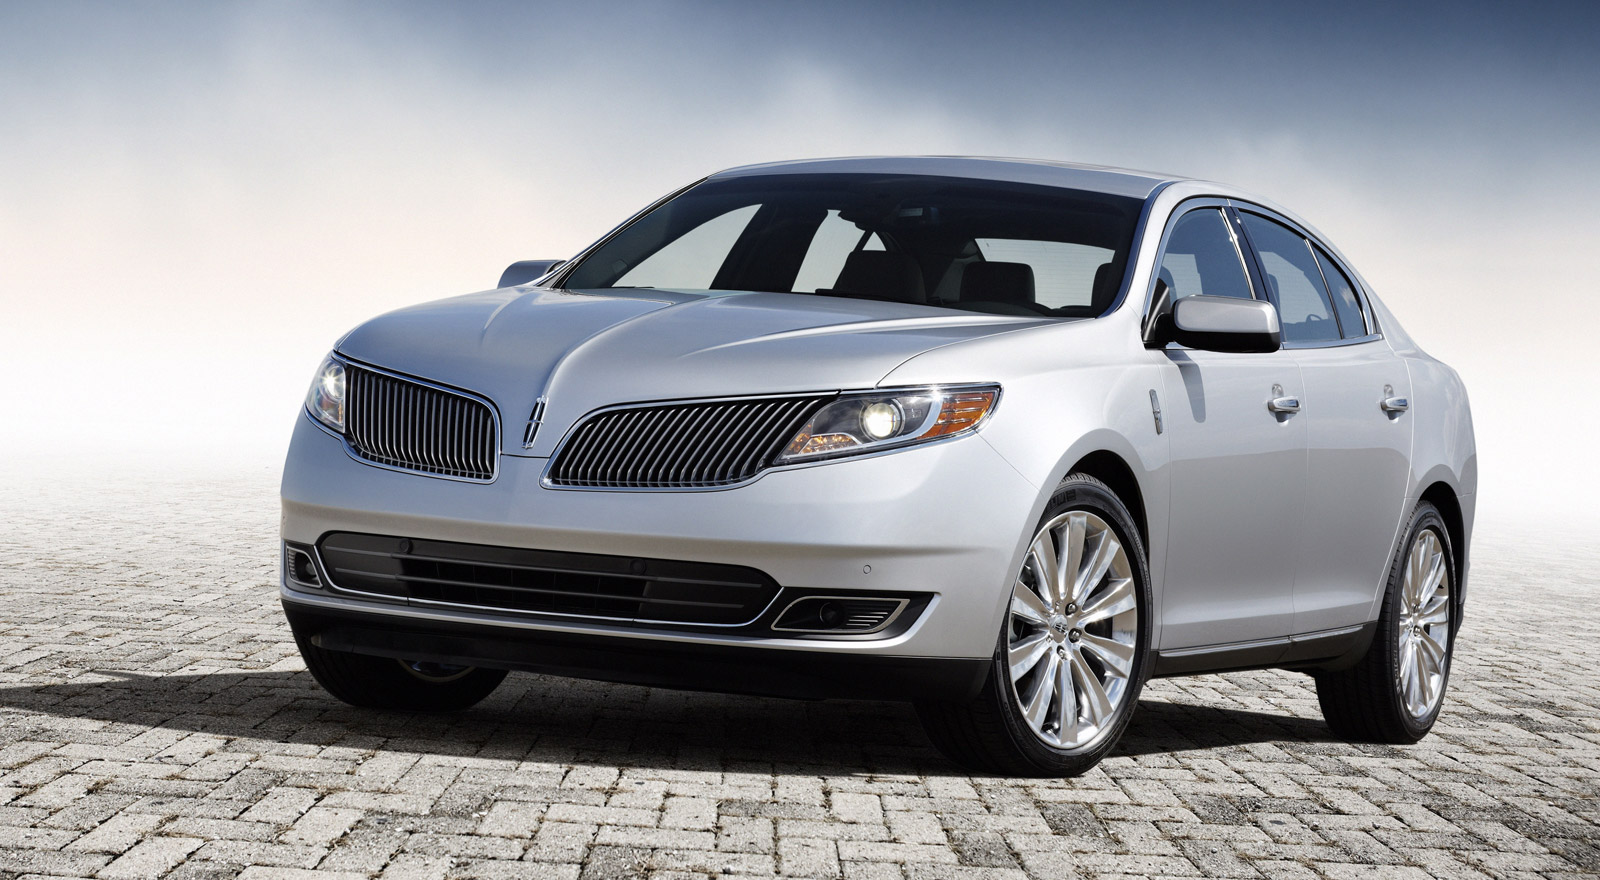 2018 Lincoln Mks Concept Car Photos Catalog 2018 HD Wallpapers Download free images and photos [musssic.tk]